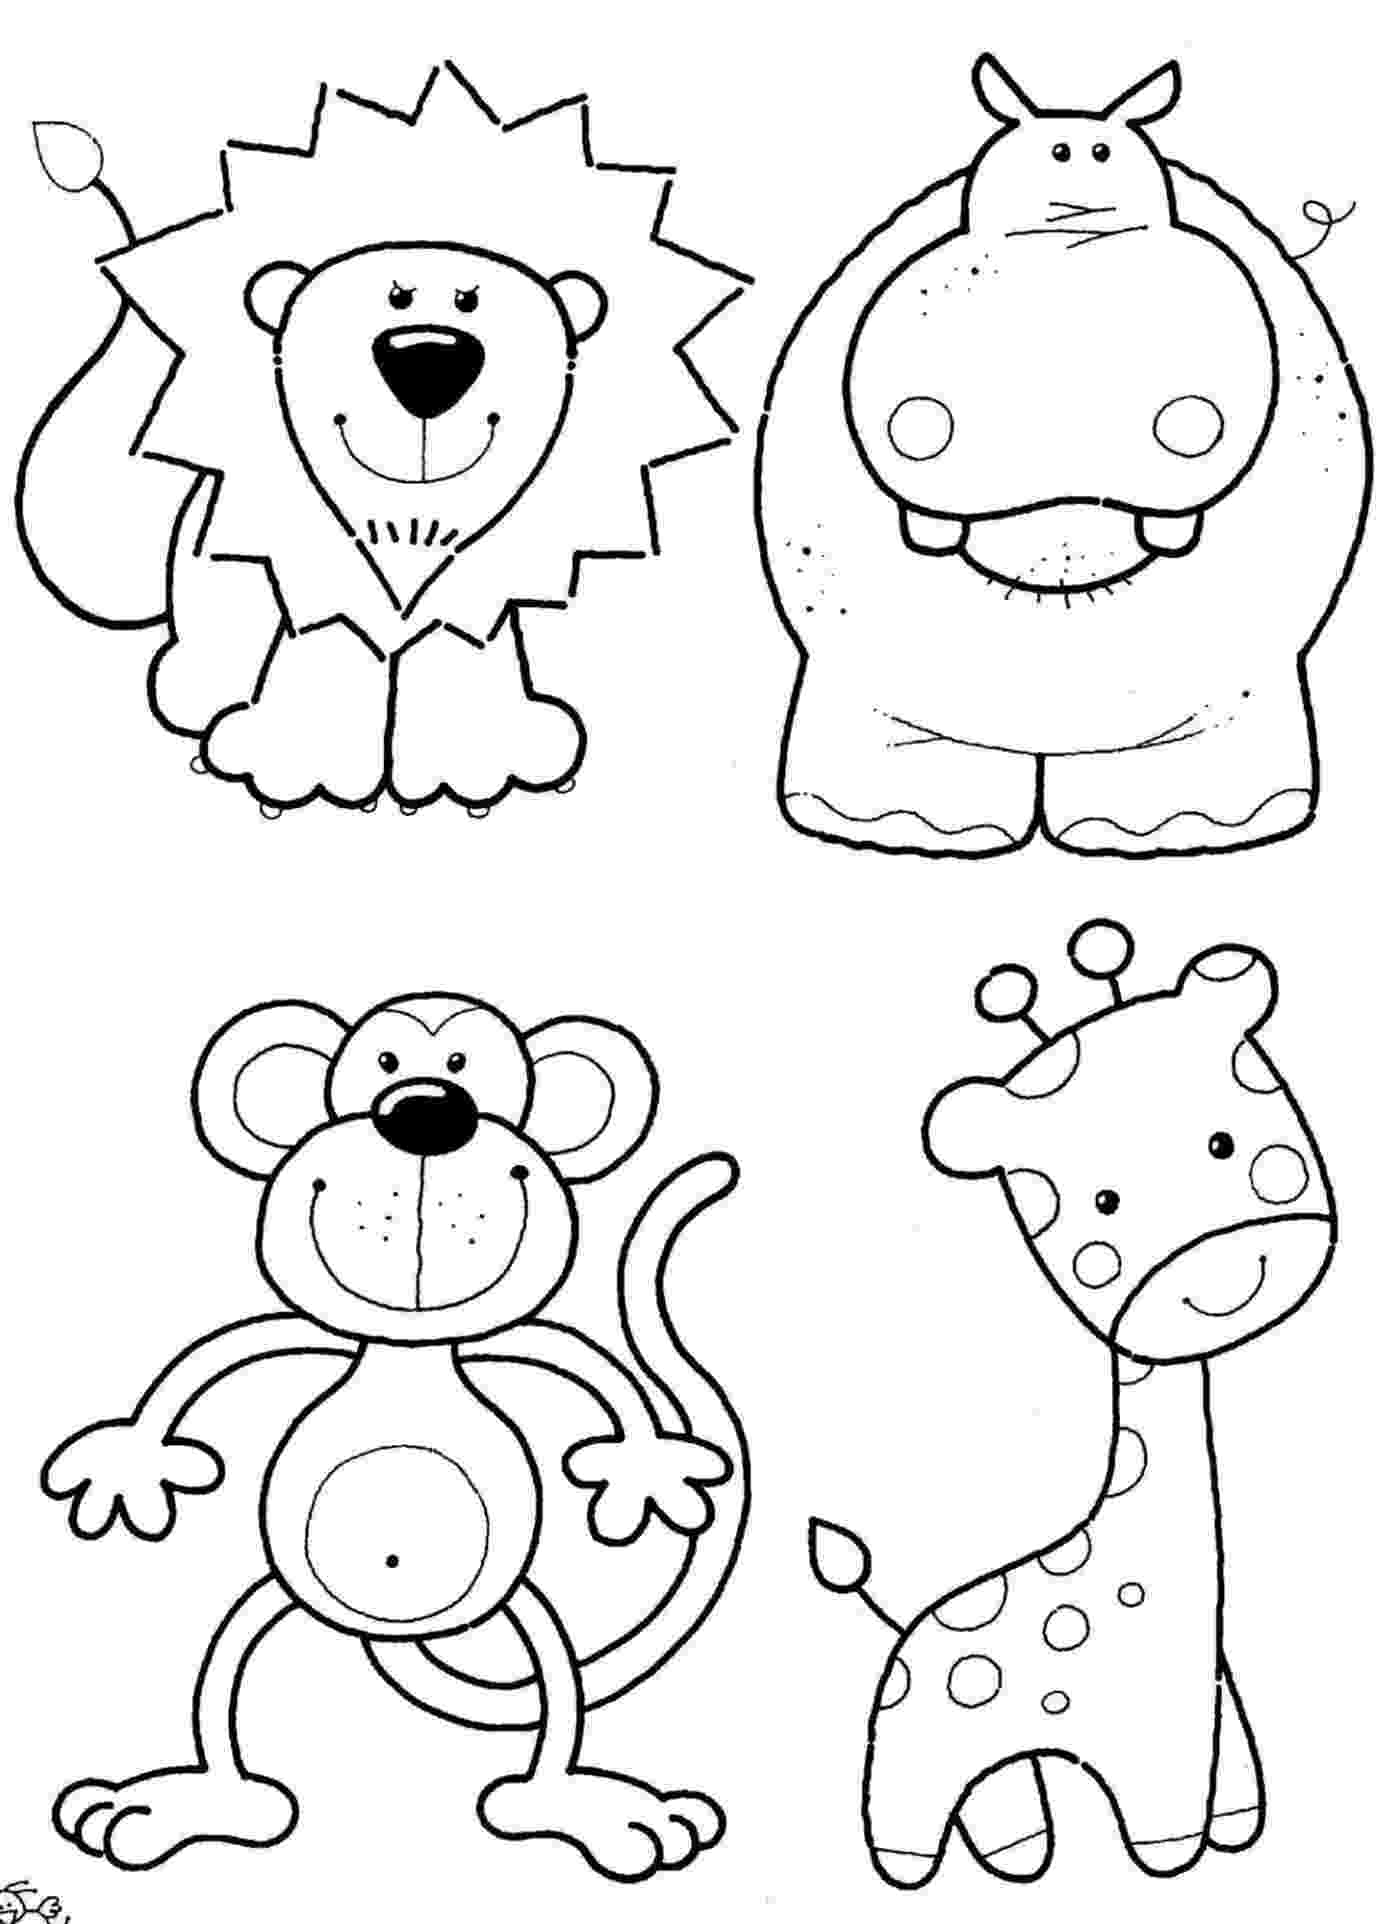 animal coloring pages for kids animals coloring pages getcoloringpagescom for animal coloring kids pages